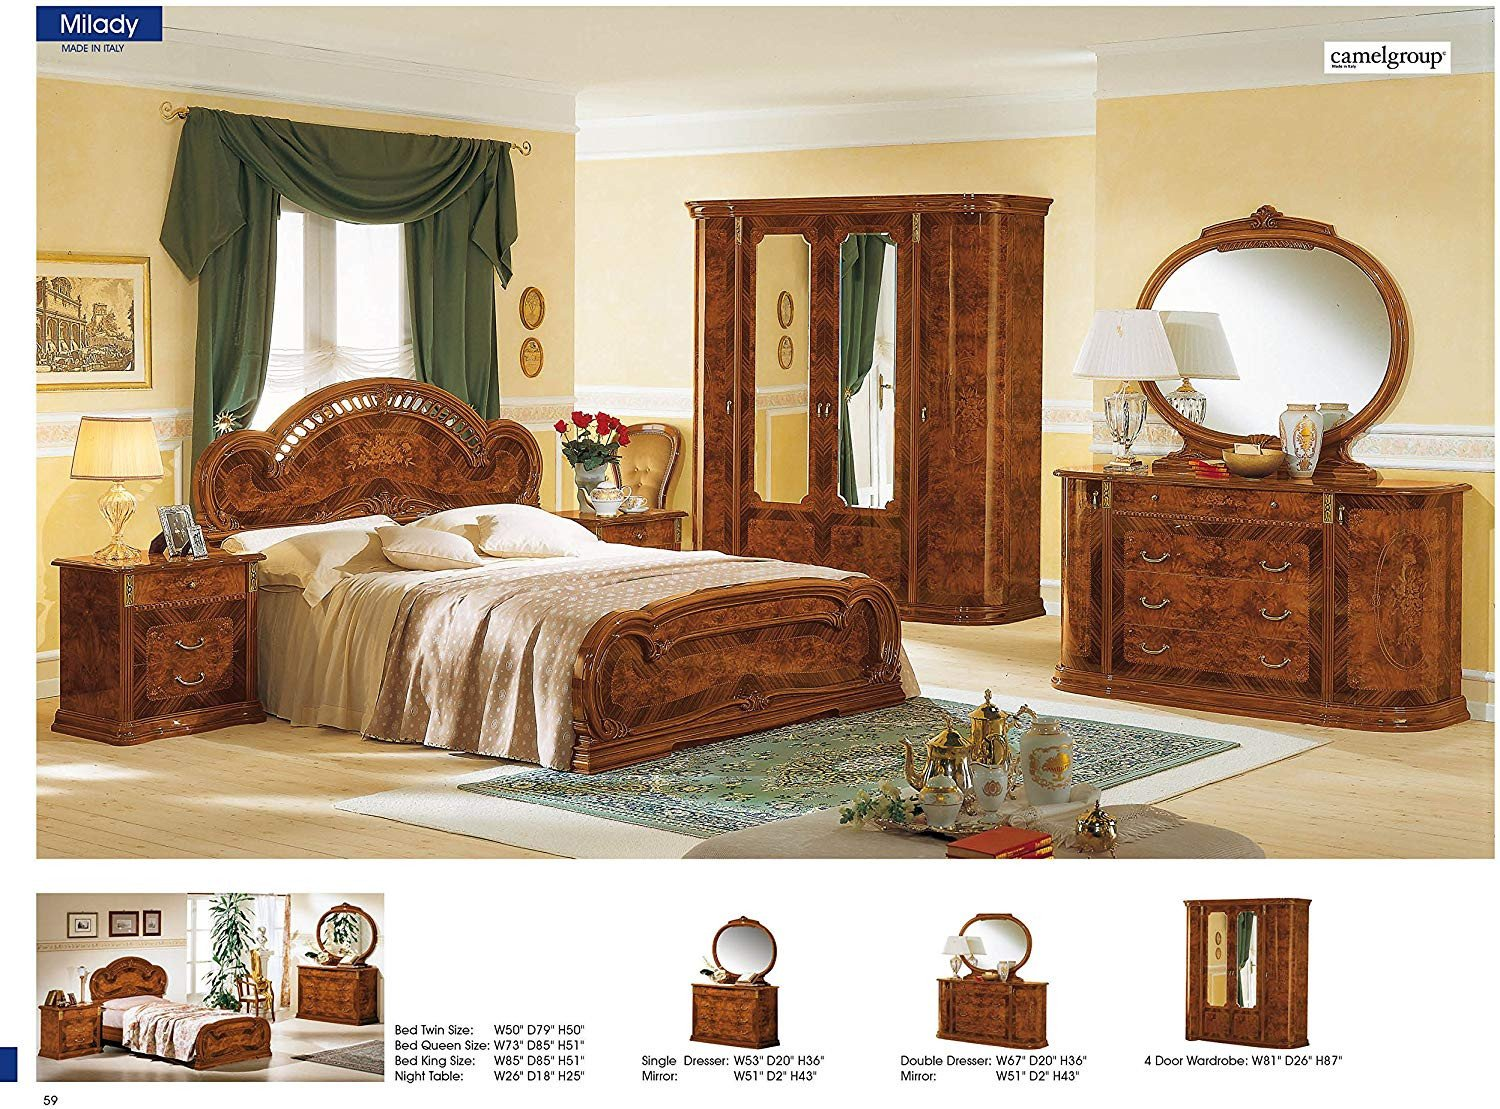 Classic Italian Bedroom Furniture Awesome Amazon Esf Milady Walnut Camelgroup Italy Kitchen